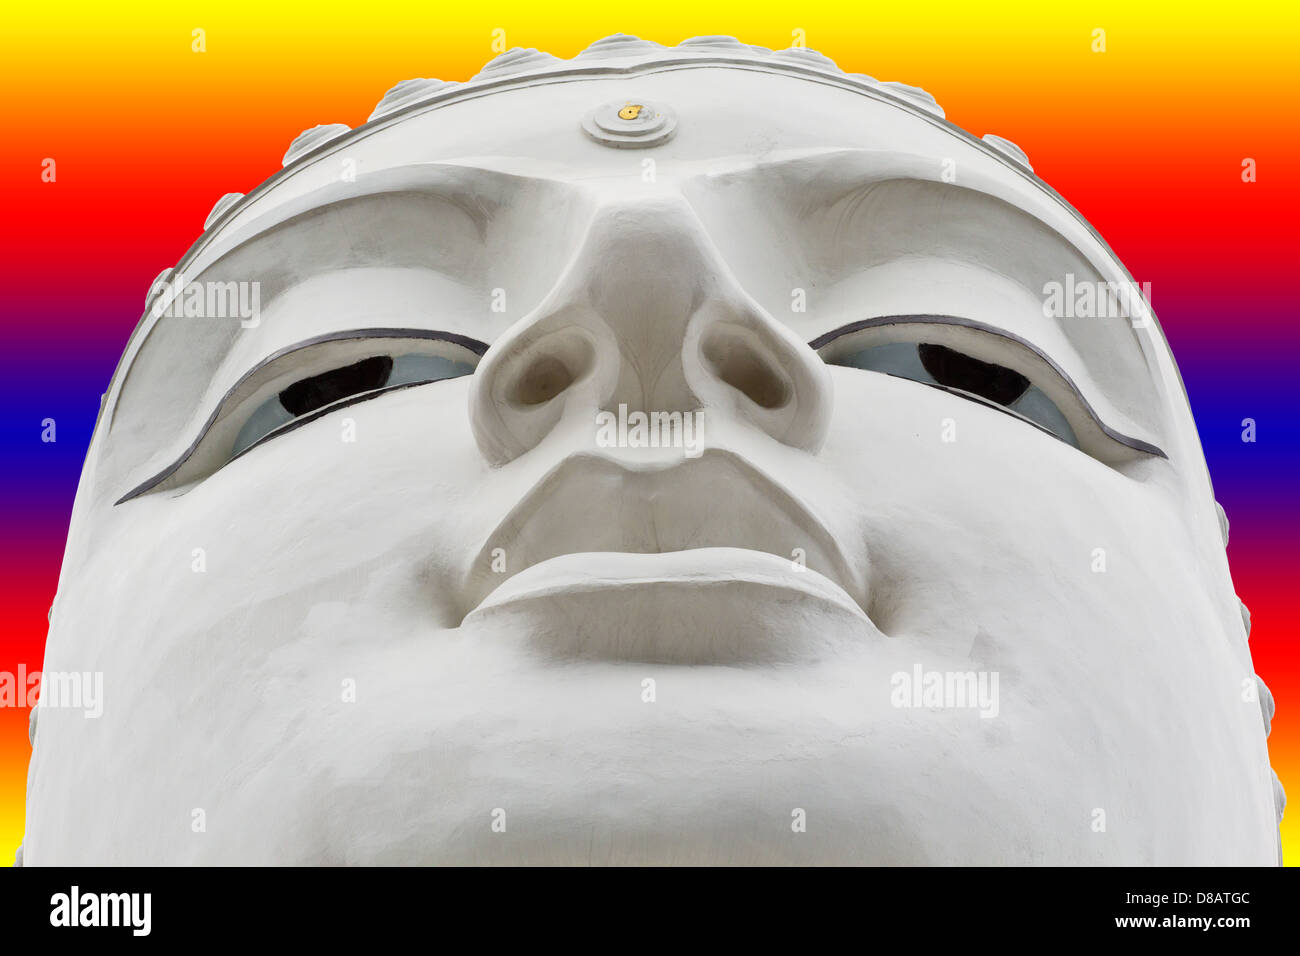 LARGE WHITE BUDDHA FACE WITH A COLOURED BACKGROUND - Stock Image